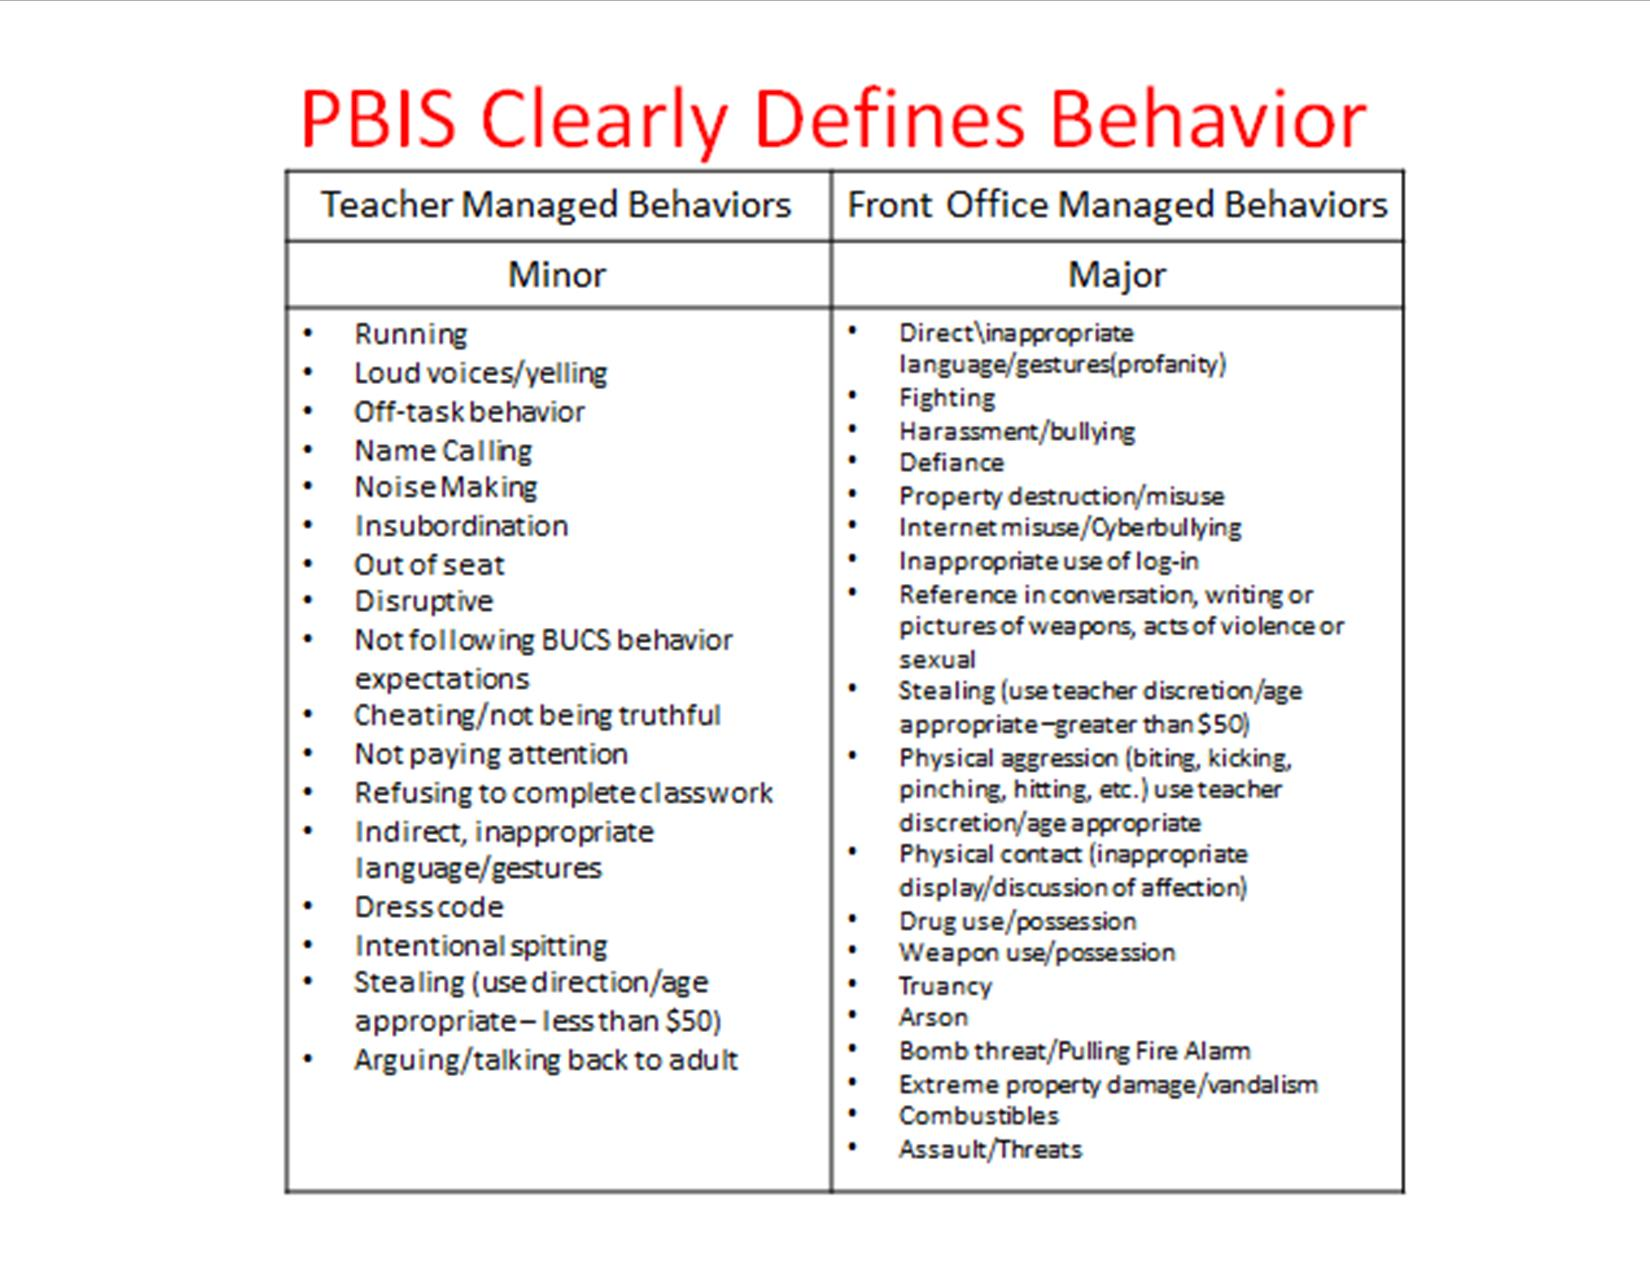 PBIS Page 4